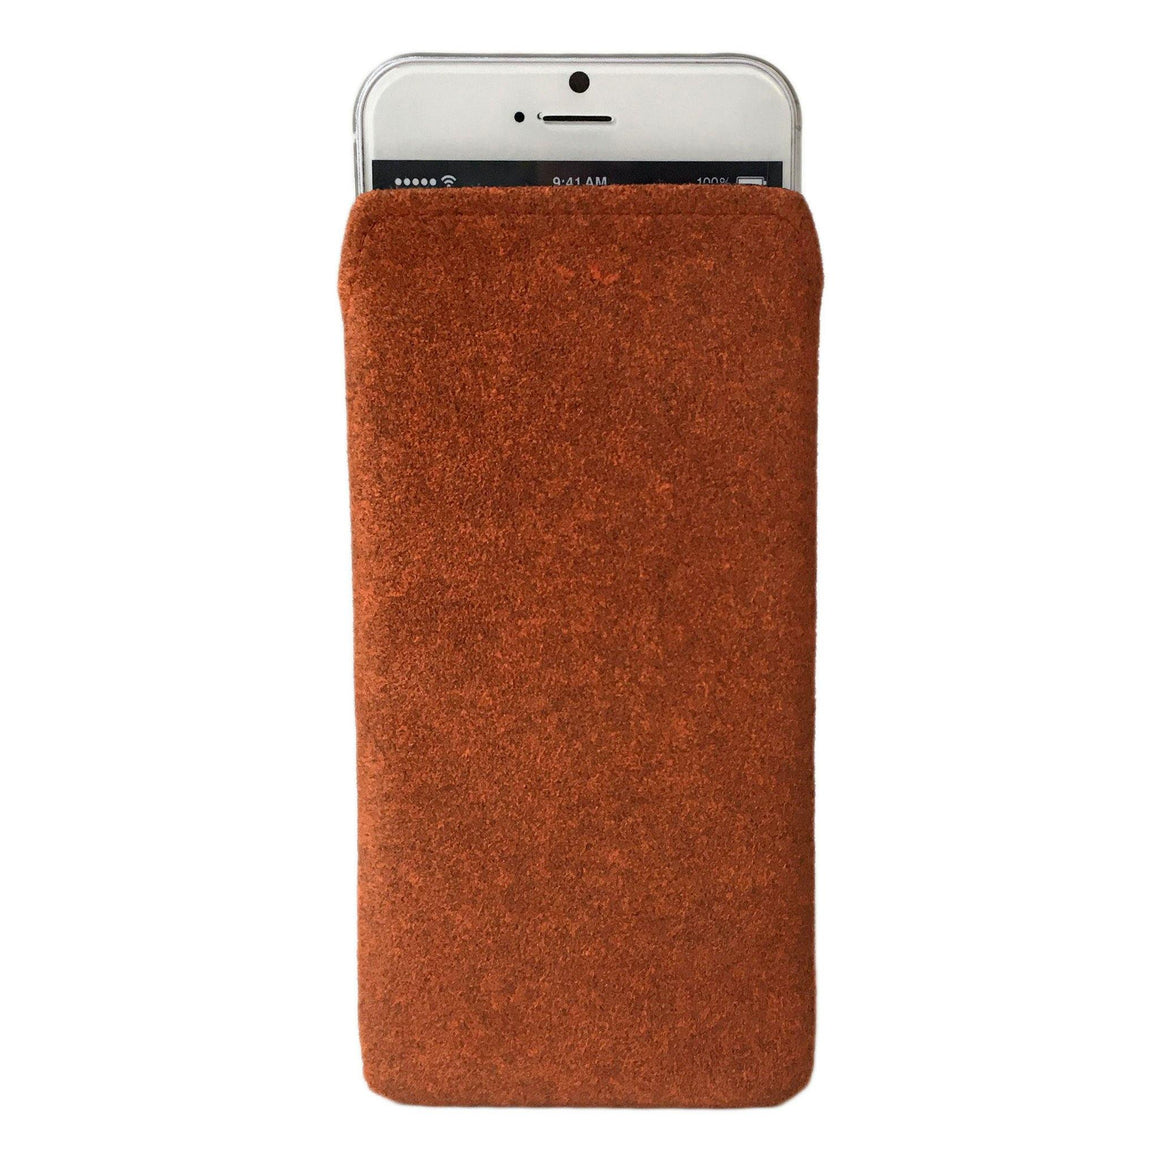 iPhone Alcantara Pouch Pashma Oranges - Wrappers UK